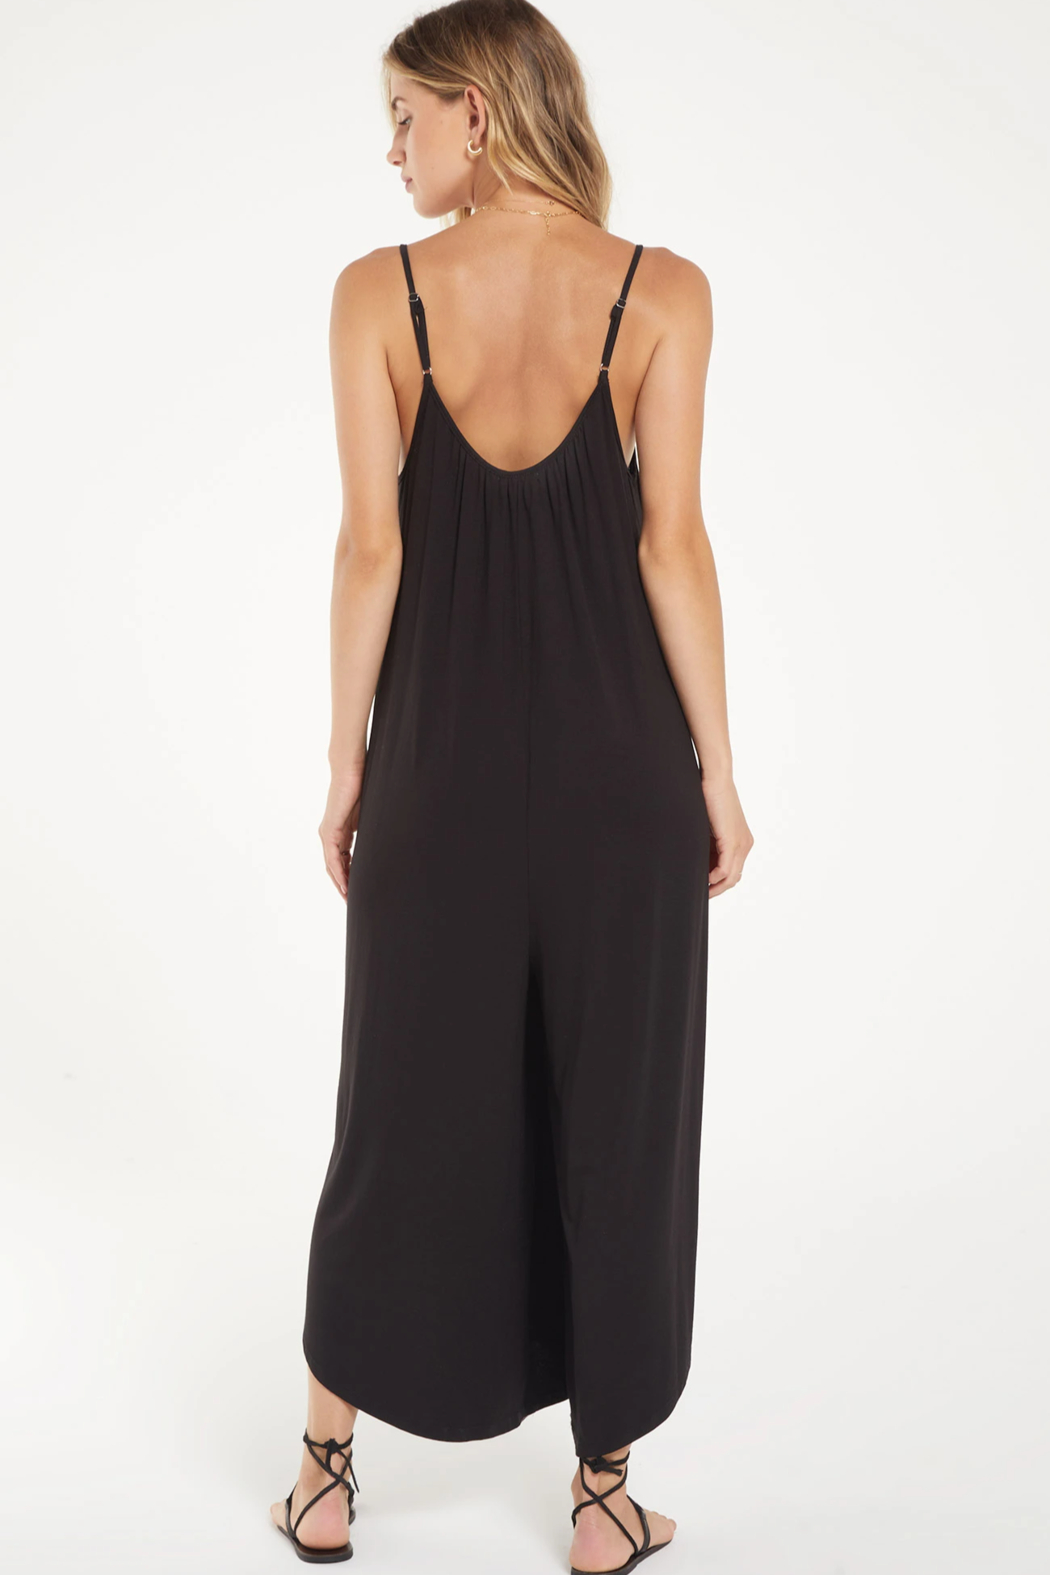 z supply Flared Jumpsuit - Back Cropped Image